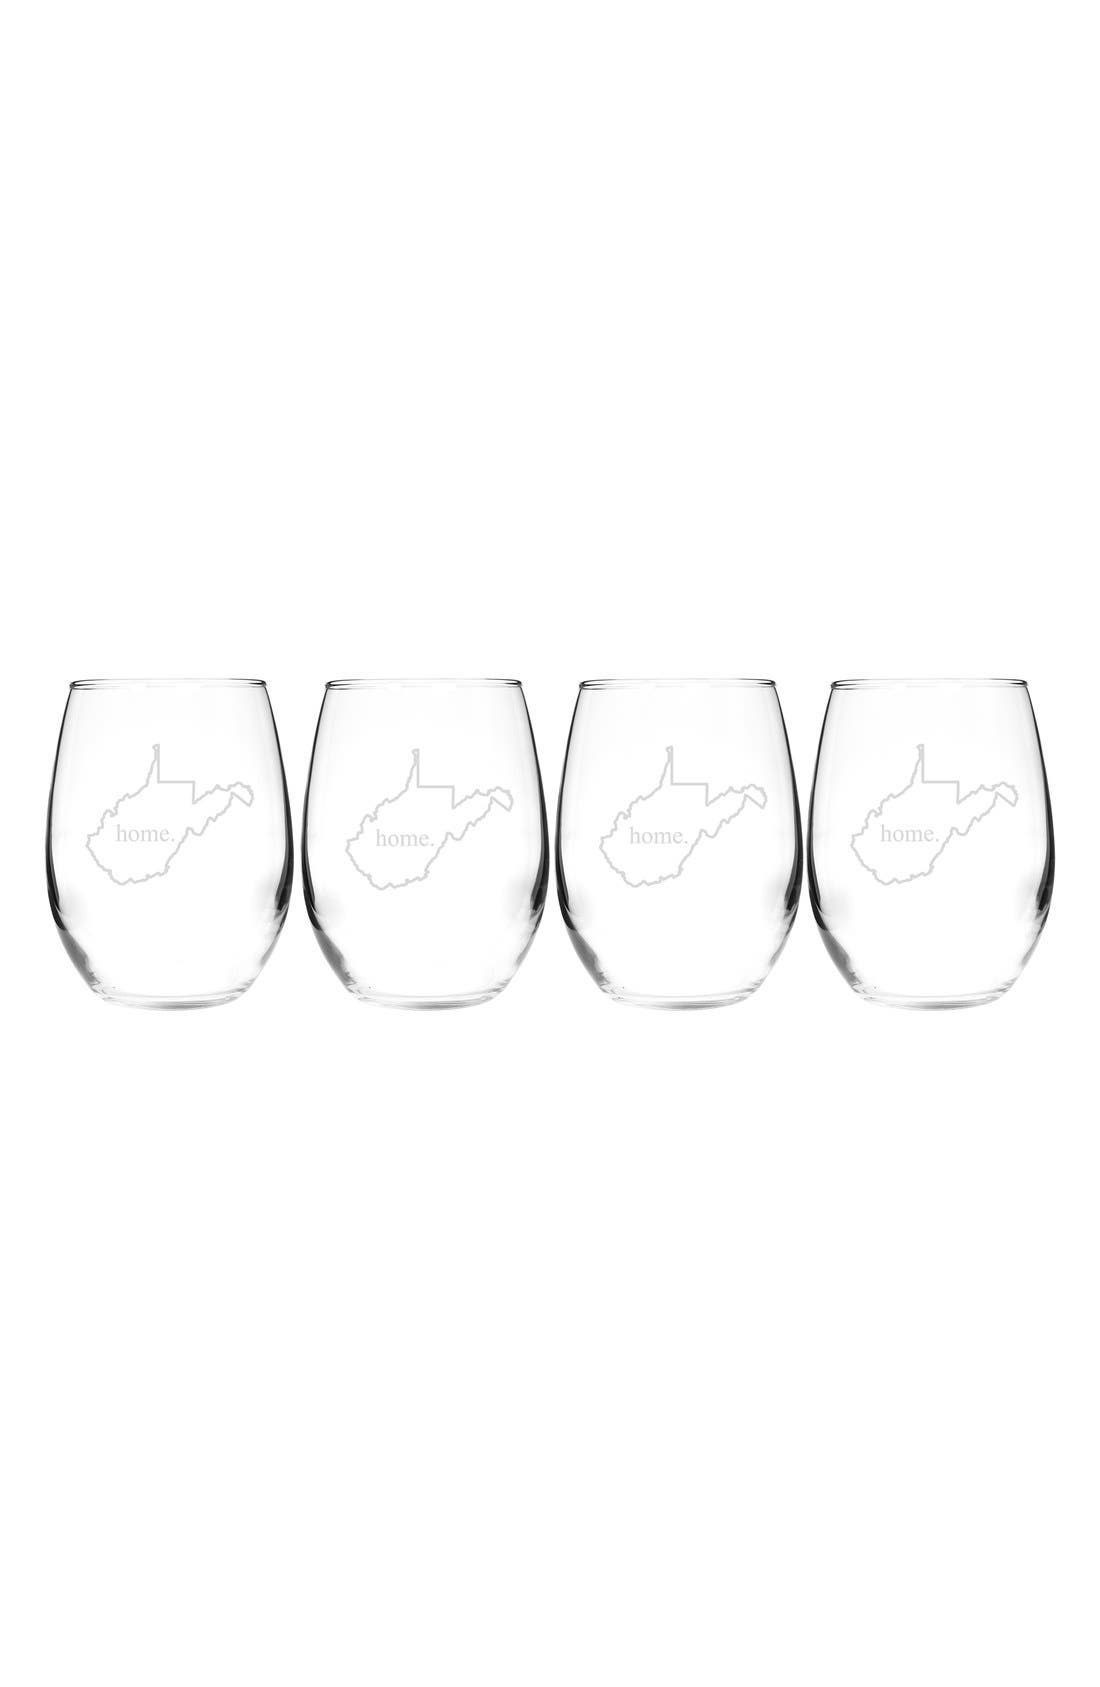 Home State Set of 4 Stemless Wine Glasses,                             Main thumbnail 49, color,